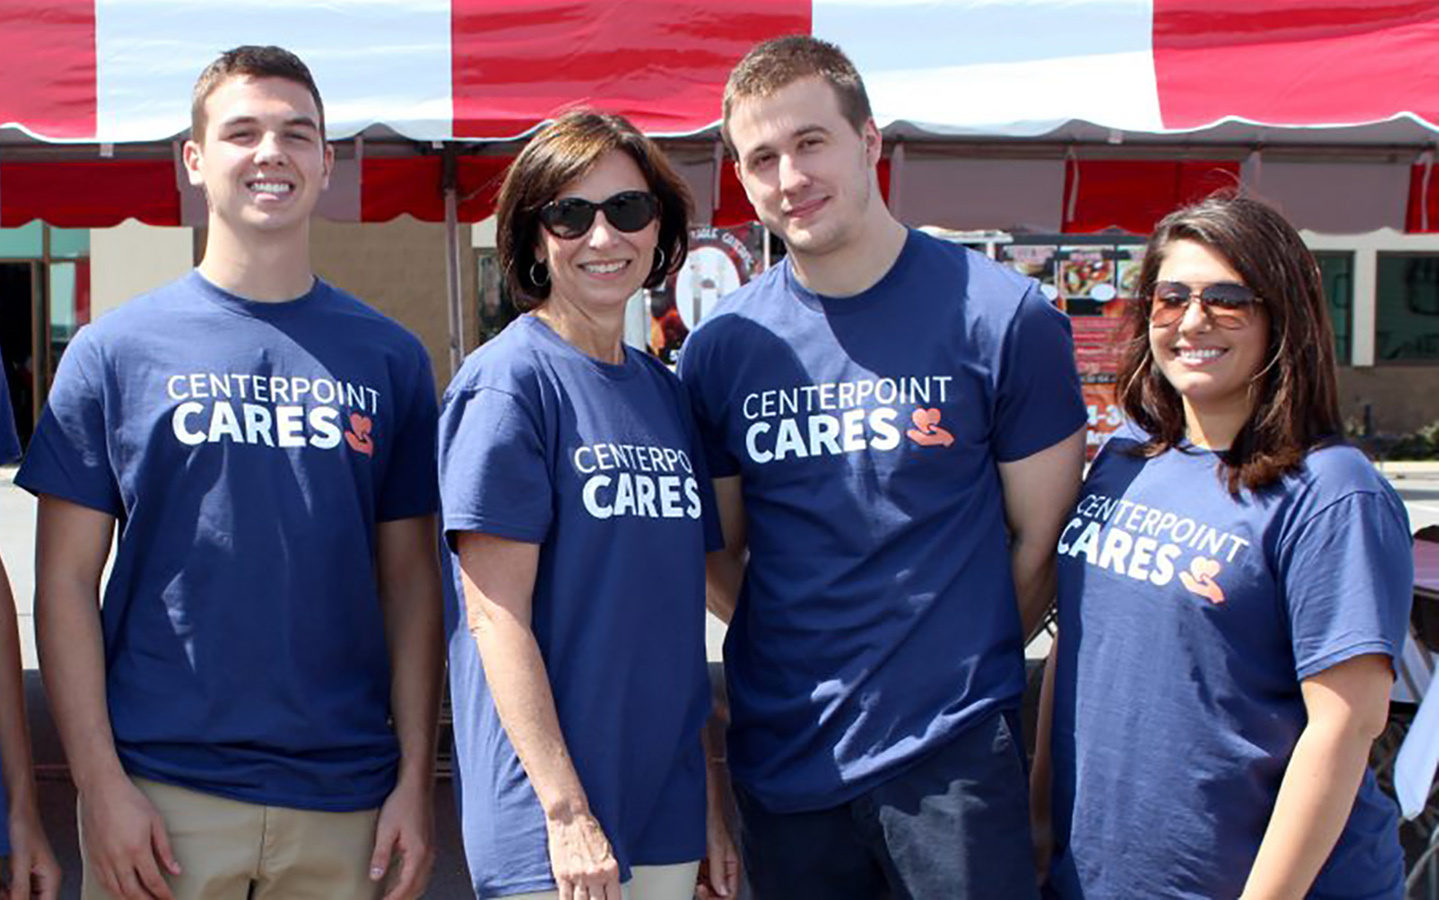 Robert Mericle CenterPoint Cares